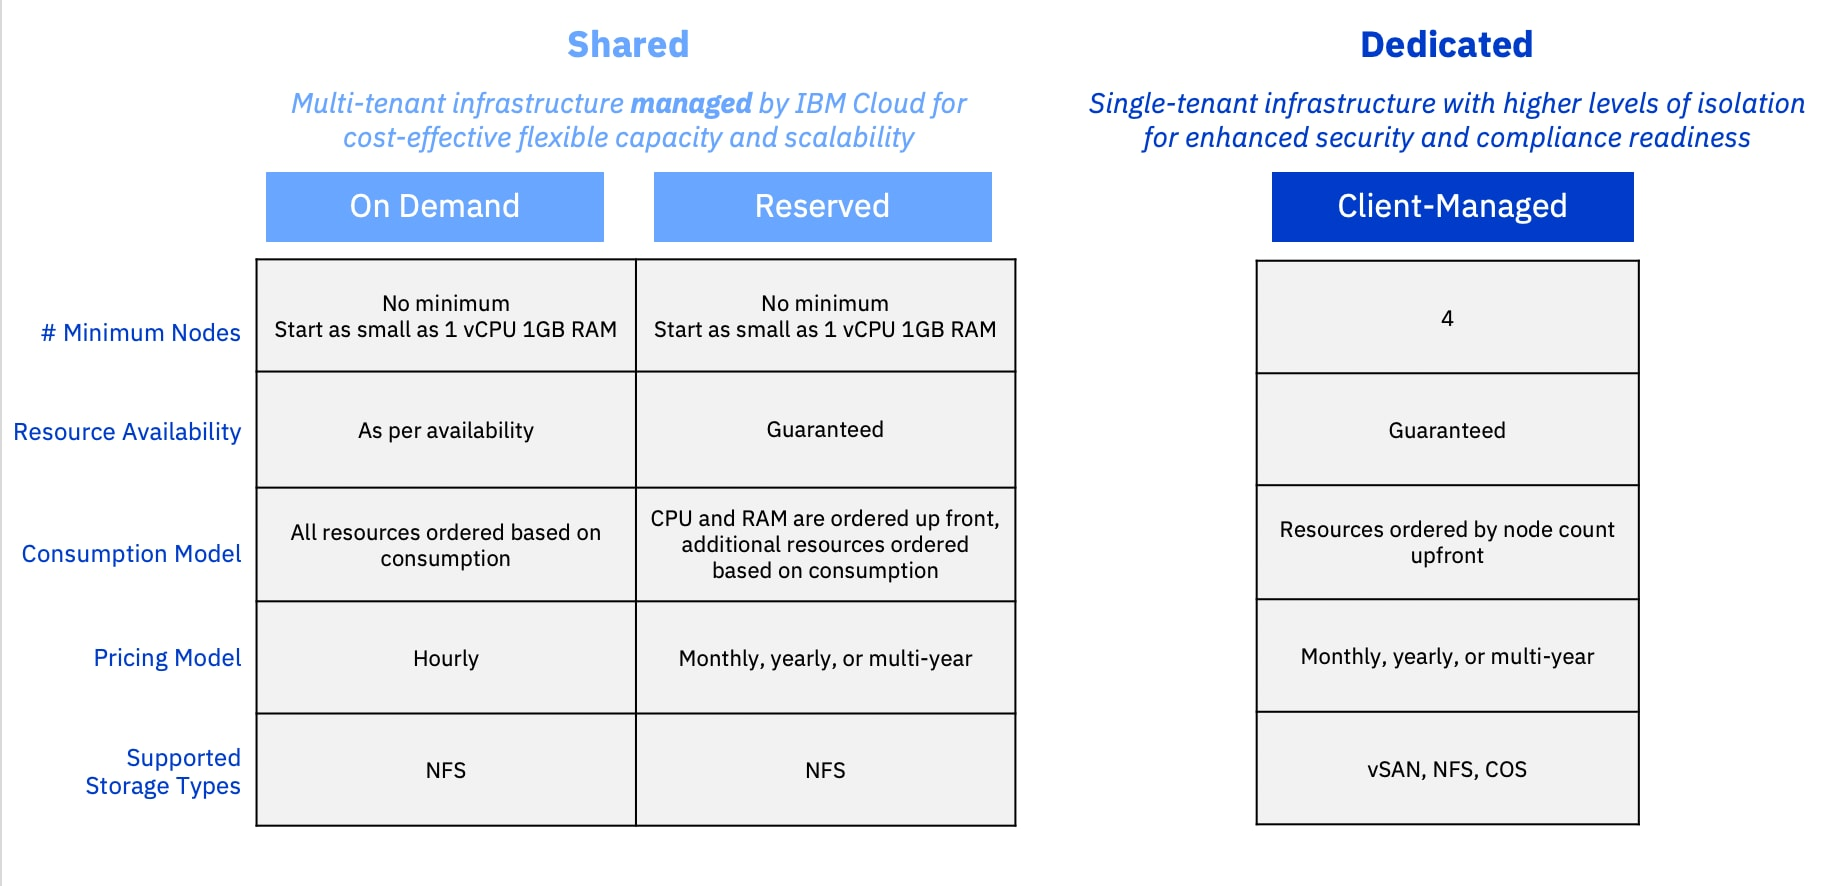 IBM Cloud VMware Solutions Shared (IC4V Shared) is offered in two consumption models: On Demand and Reserved.